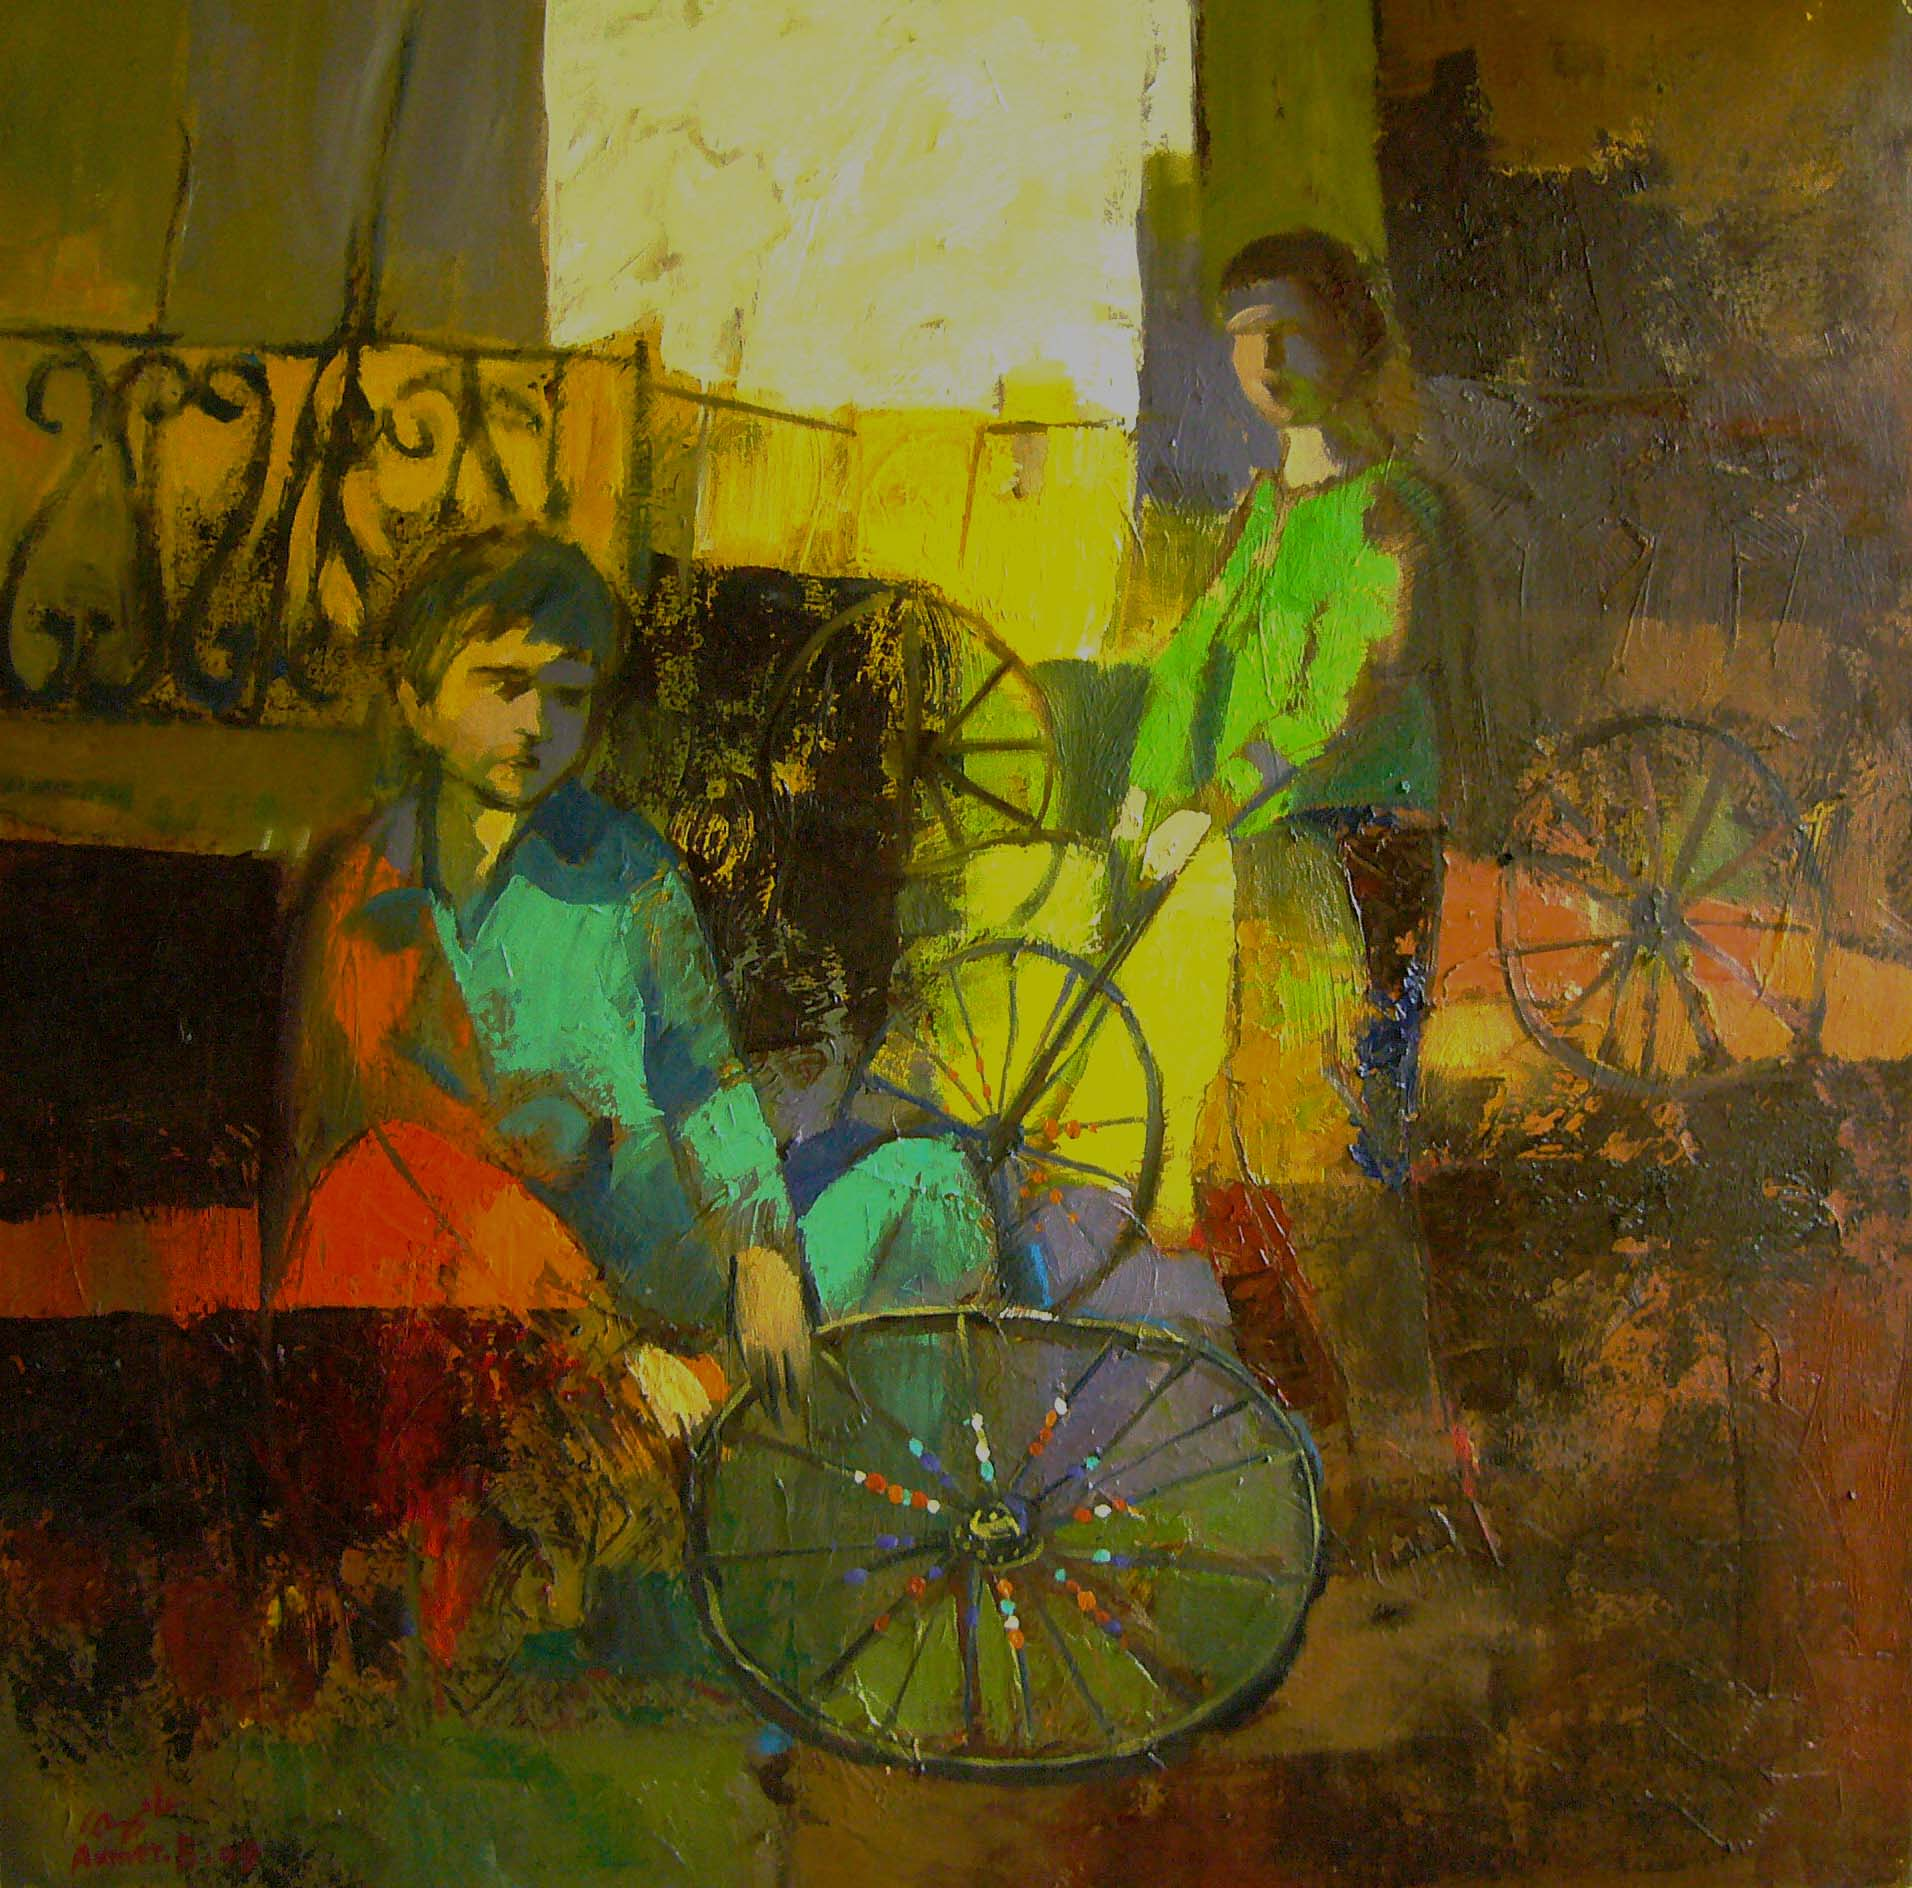 80x80 cm - Oil on canvas - 2009,